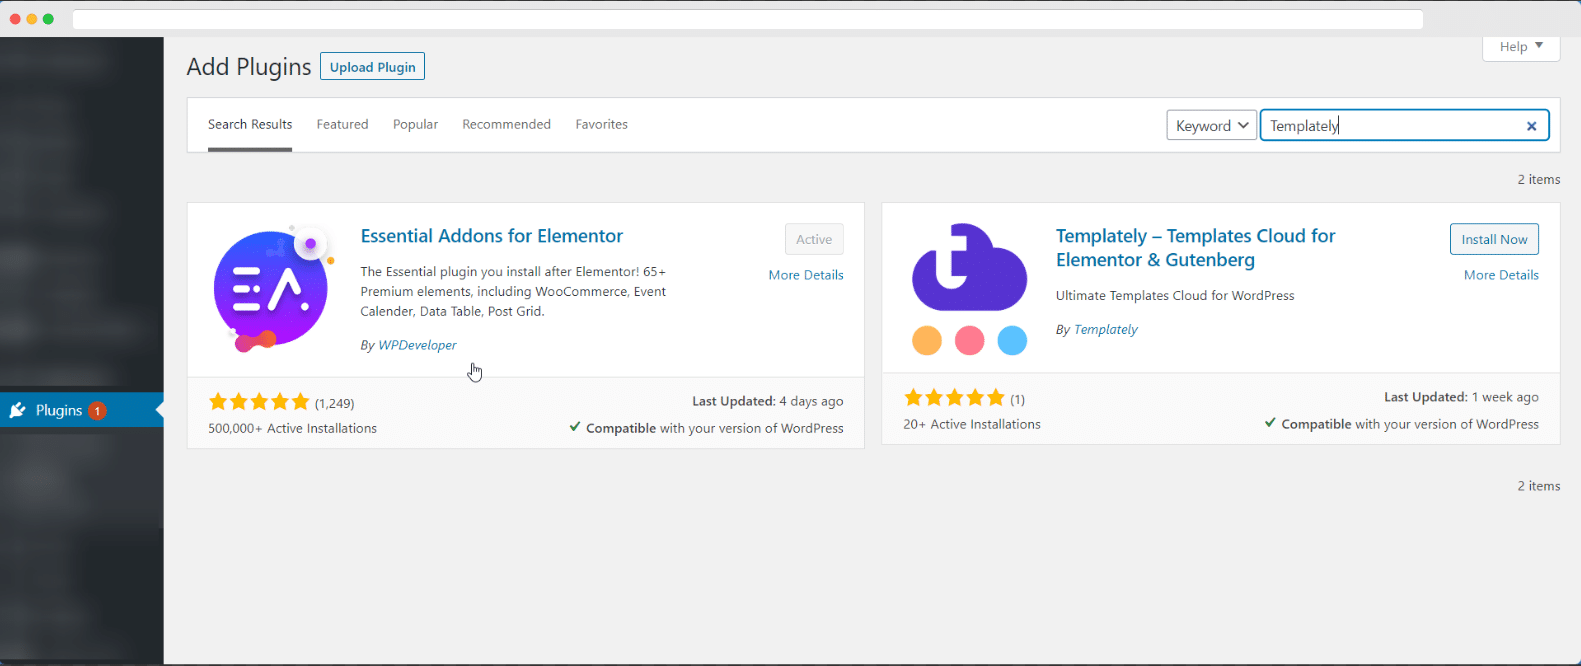 Install Templately on WordPress